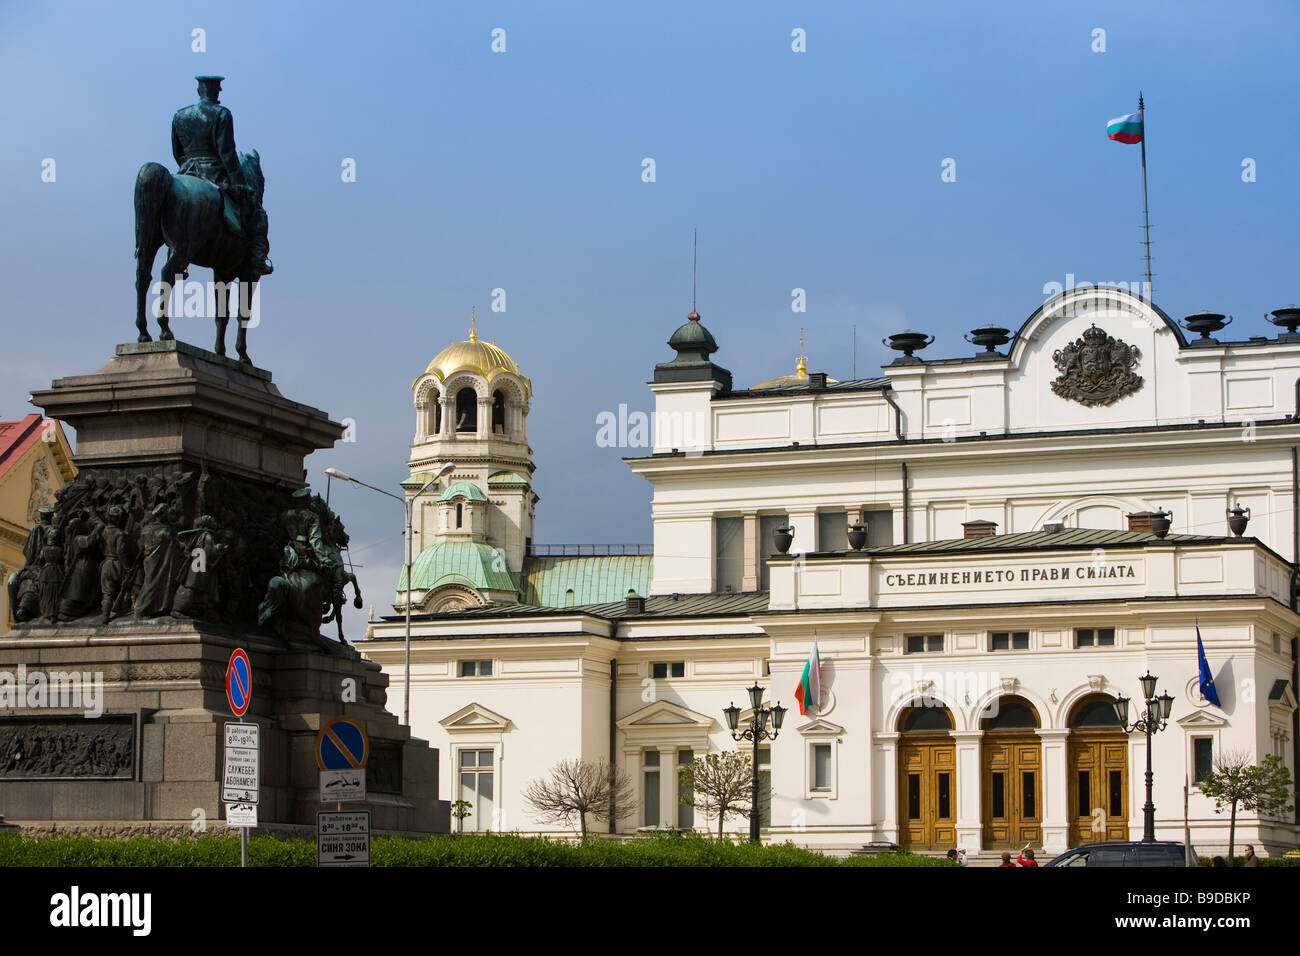 National Assembly Tsar Osvoboditel statue Sofia Bulgaria - Stock Image